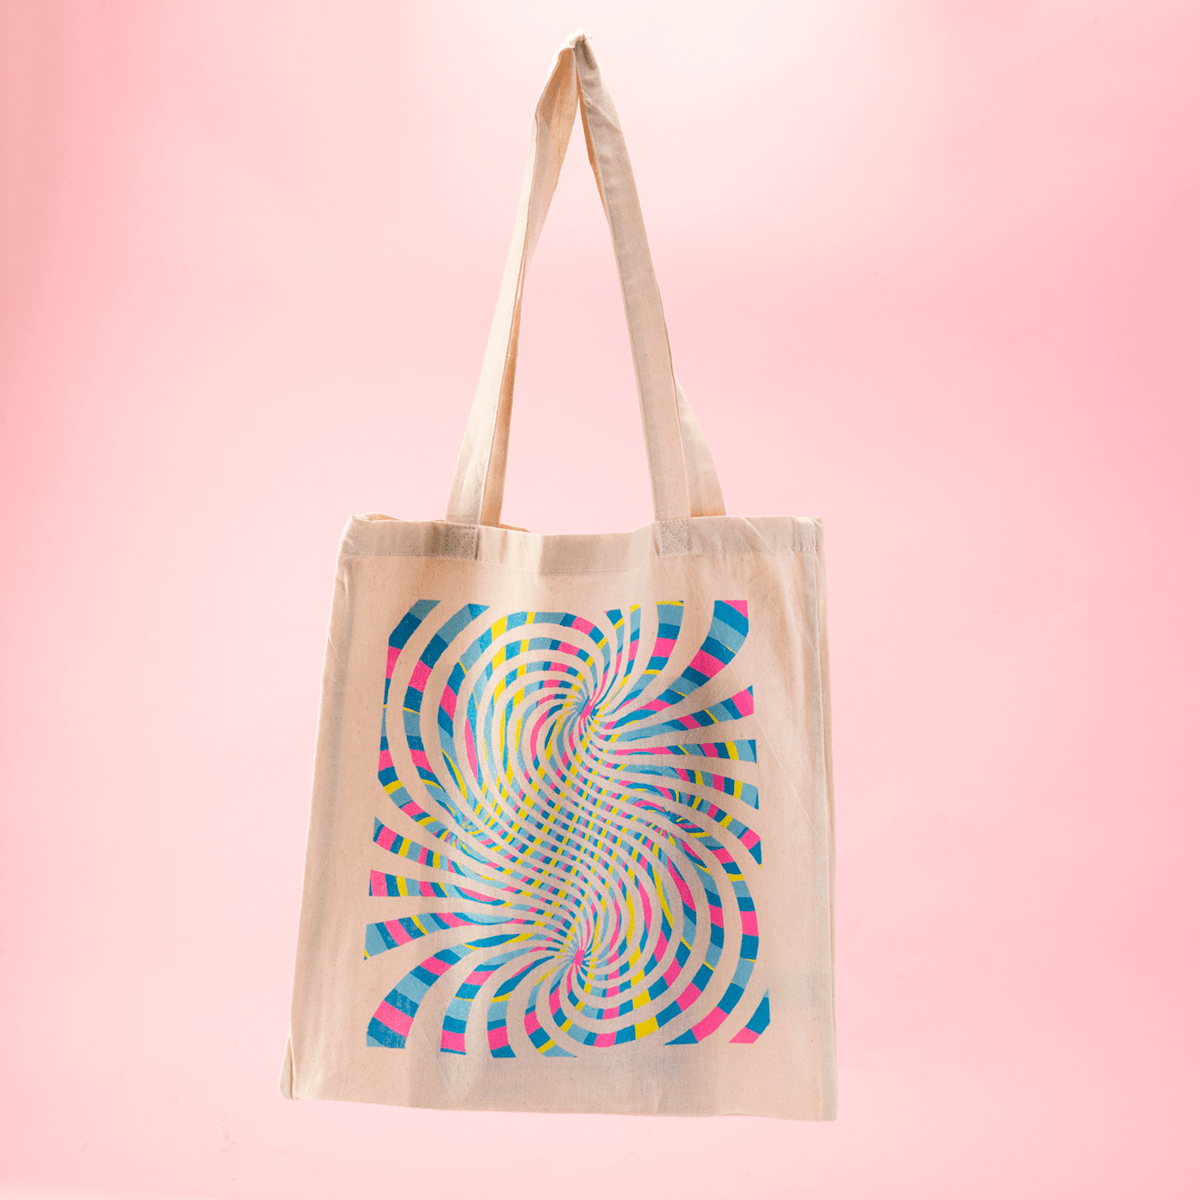 Mike Perry, The Travelling Canvas, Tote Bag, Awesome Merchandise